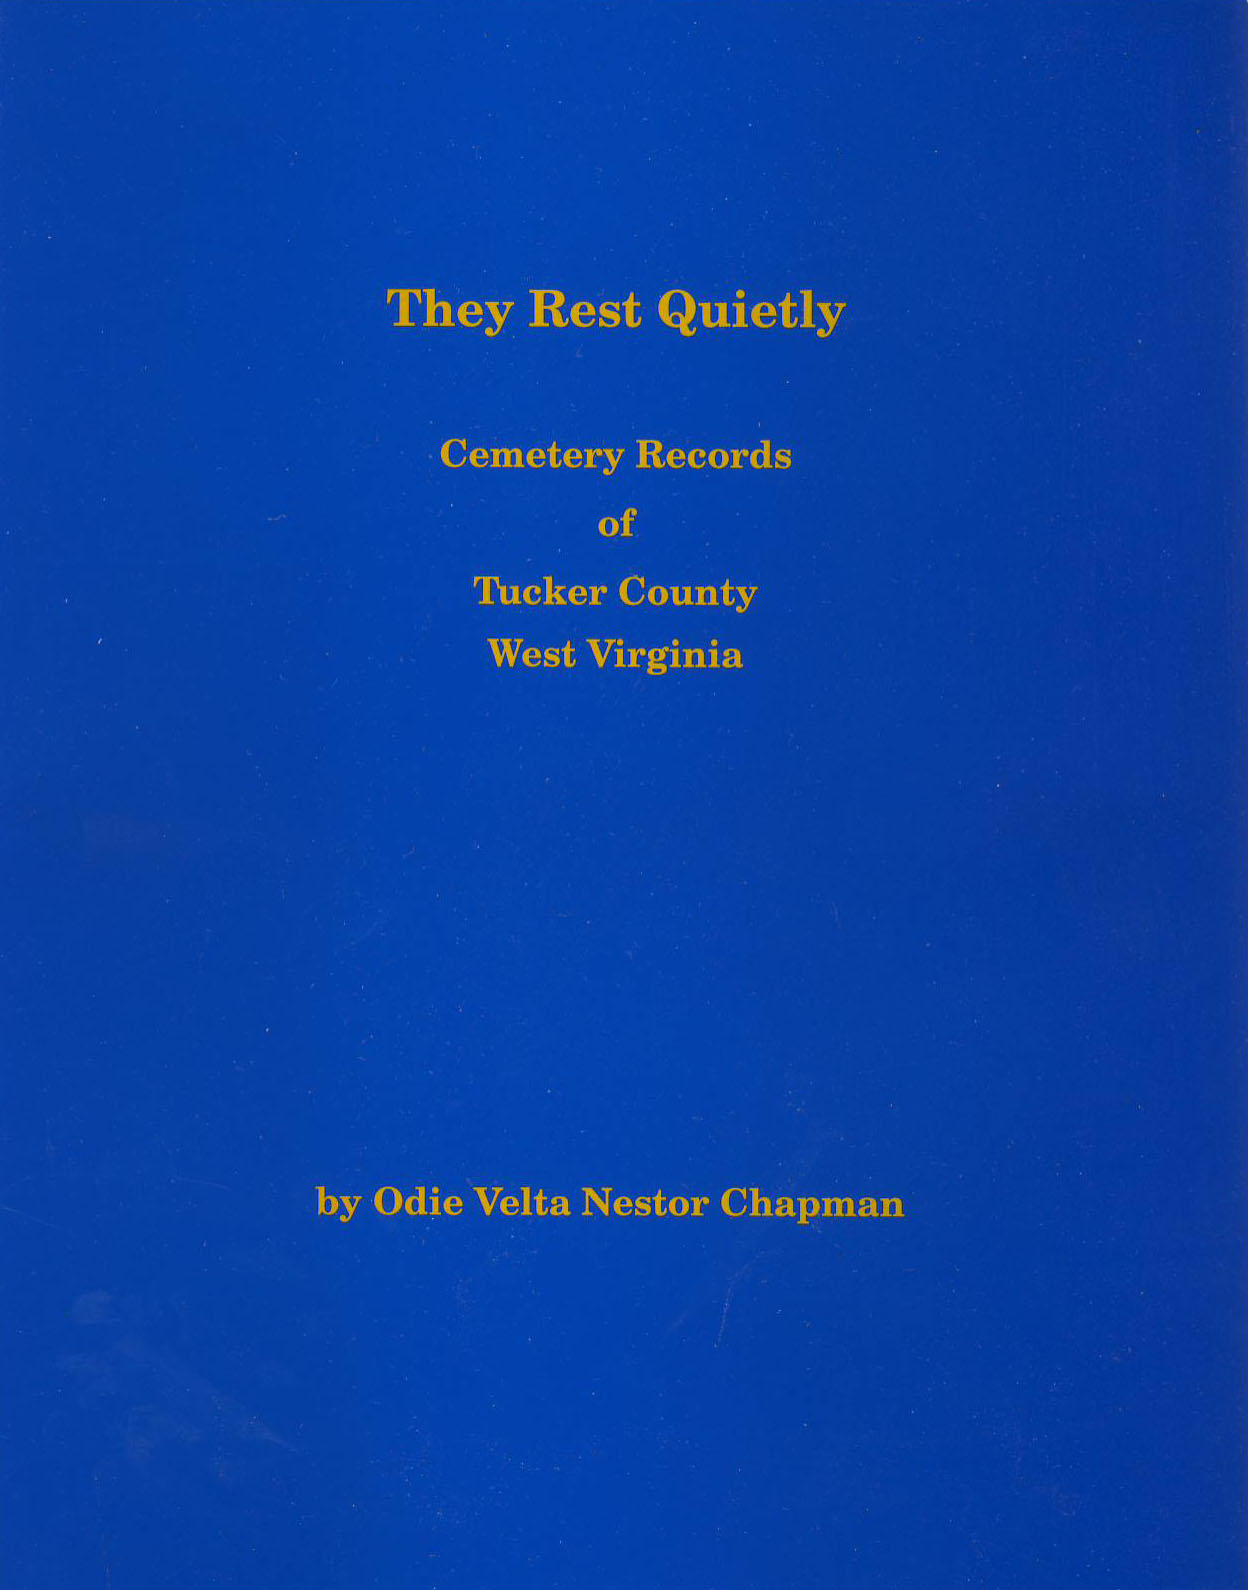 They Rest Quietly -- Cemetery Records of Tucker County, West Virginia